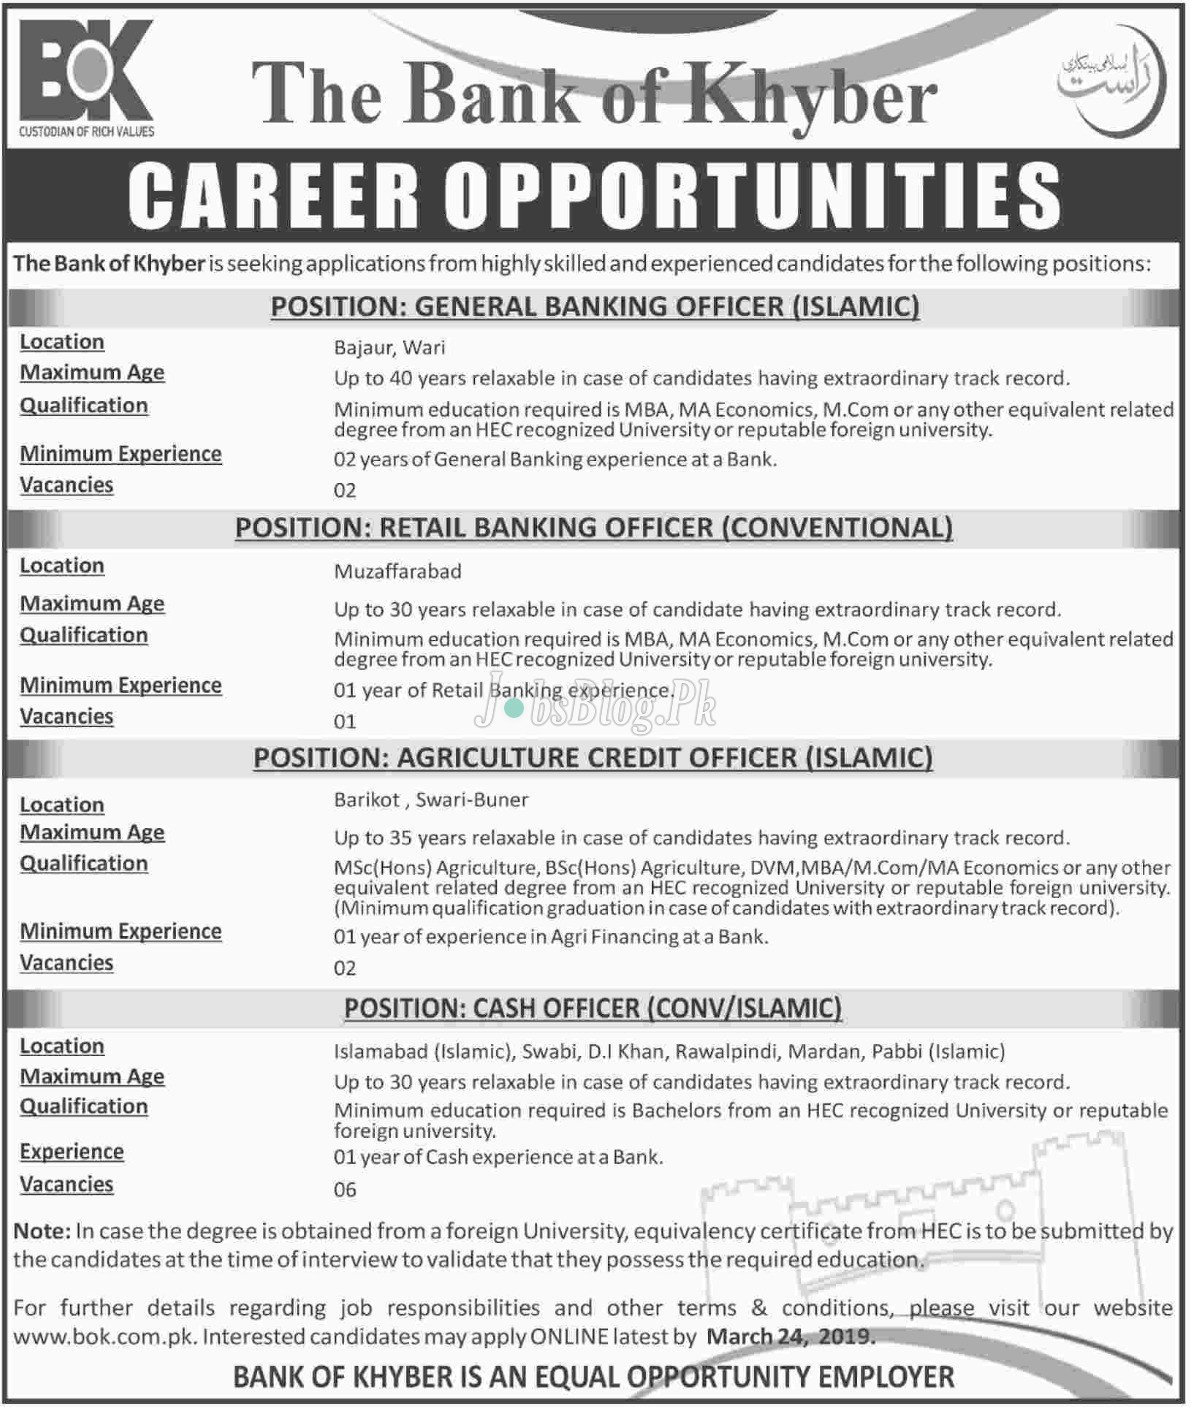 The Bank of Khyber (BOK) Jobs 2019 Apply Online bok.com.pk Latest